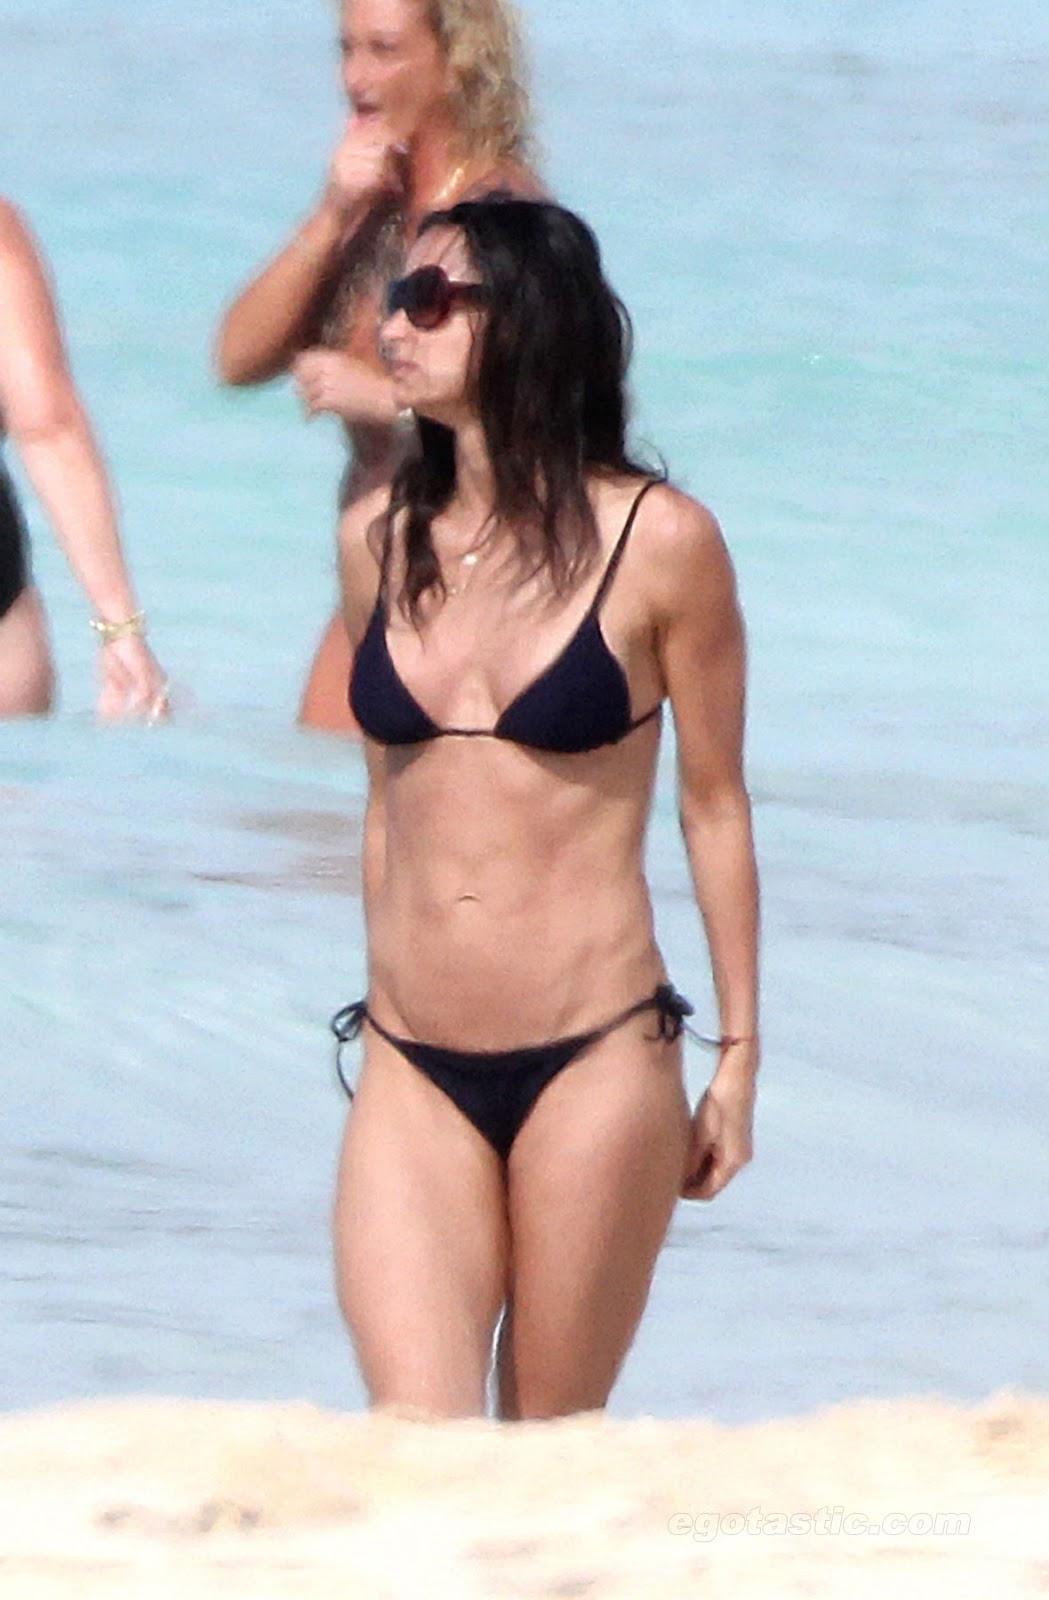 http://4.bp.blogspot.com/-BVE0wAr1CMQ/TqgFchjMKqI/AAAAAAAAAns/g9CZKCNSzwc/s1600/demi_moore_hot_bikini_body_on_caribbean_vacation_002.jpg